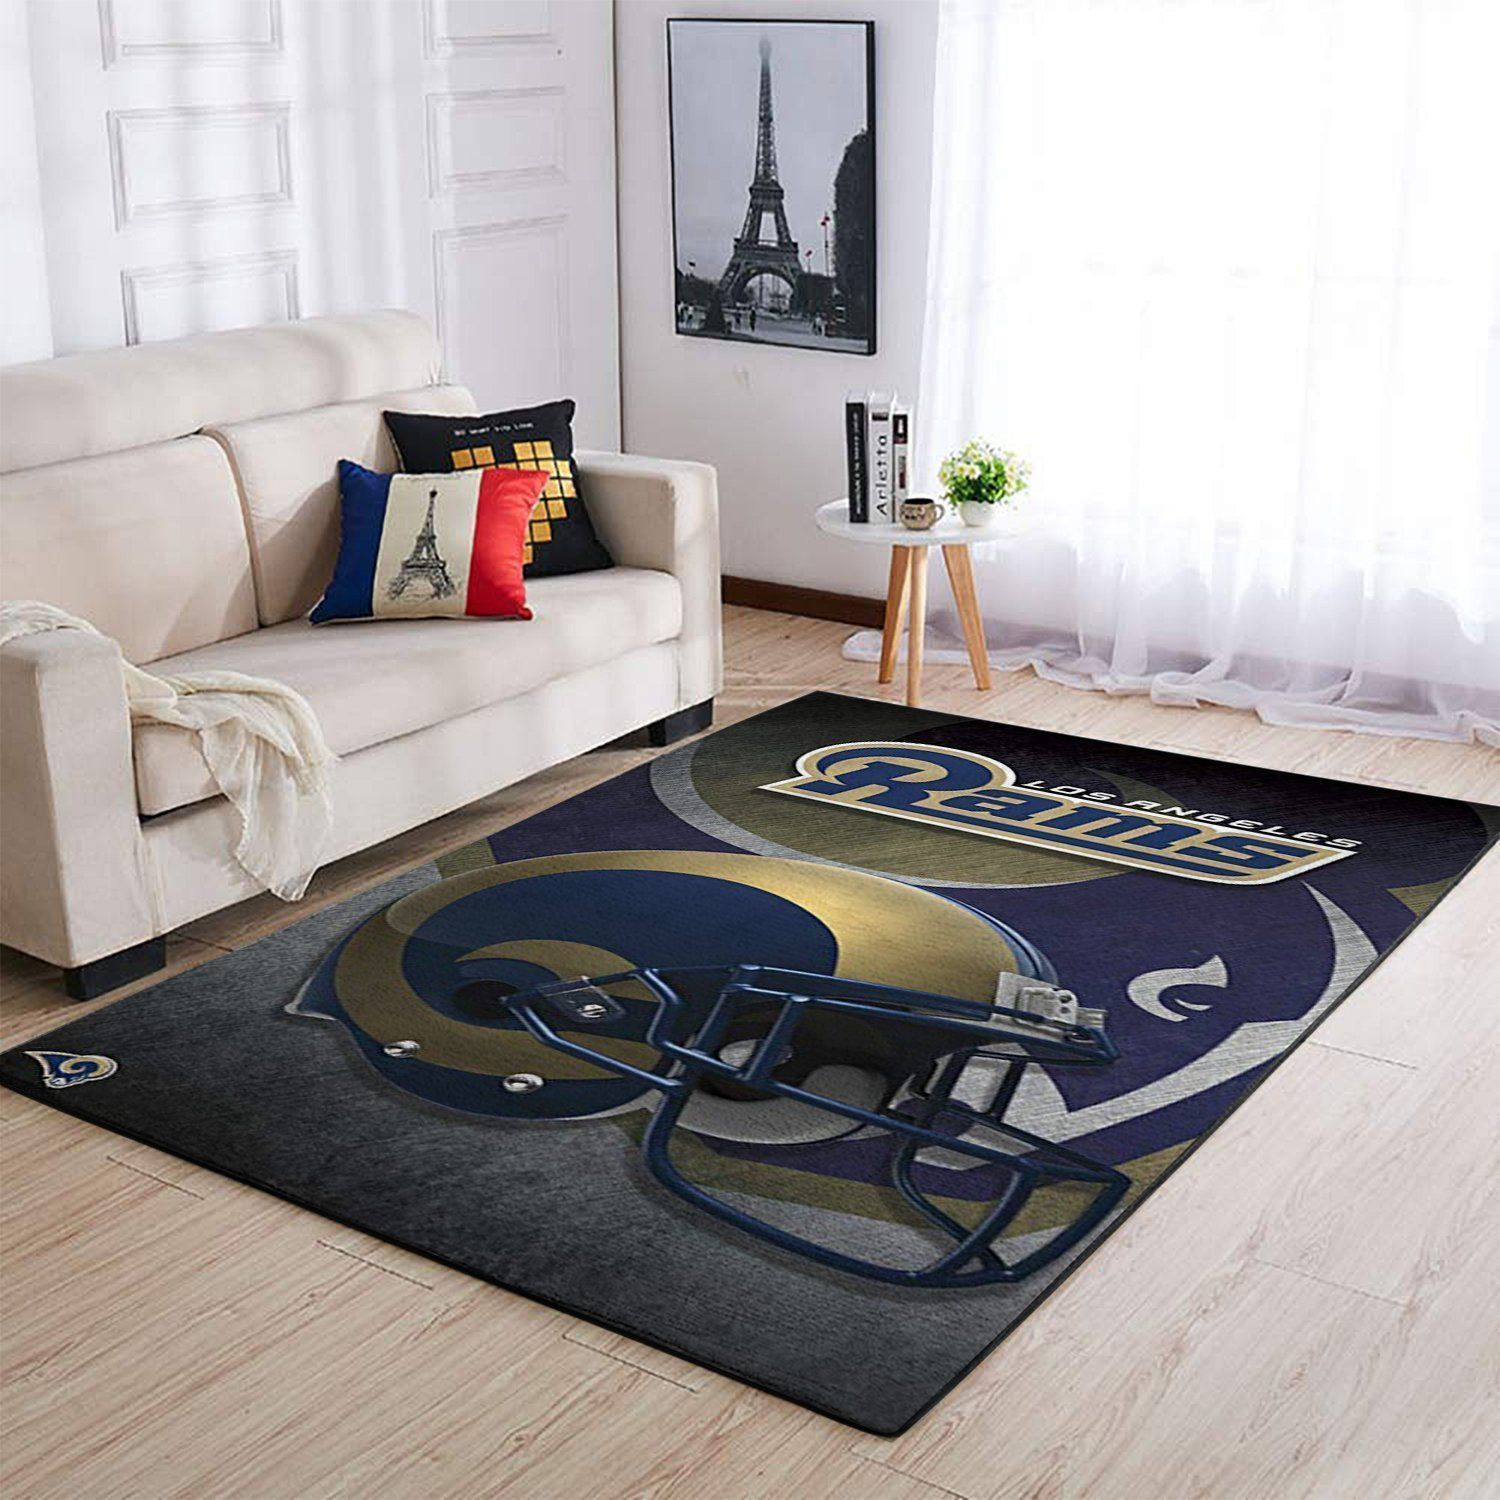 Los Angeles Rams Area Rug, NFL Football Team Logo Carpet, Living Room Rugs Floor Decor 02